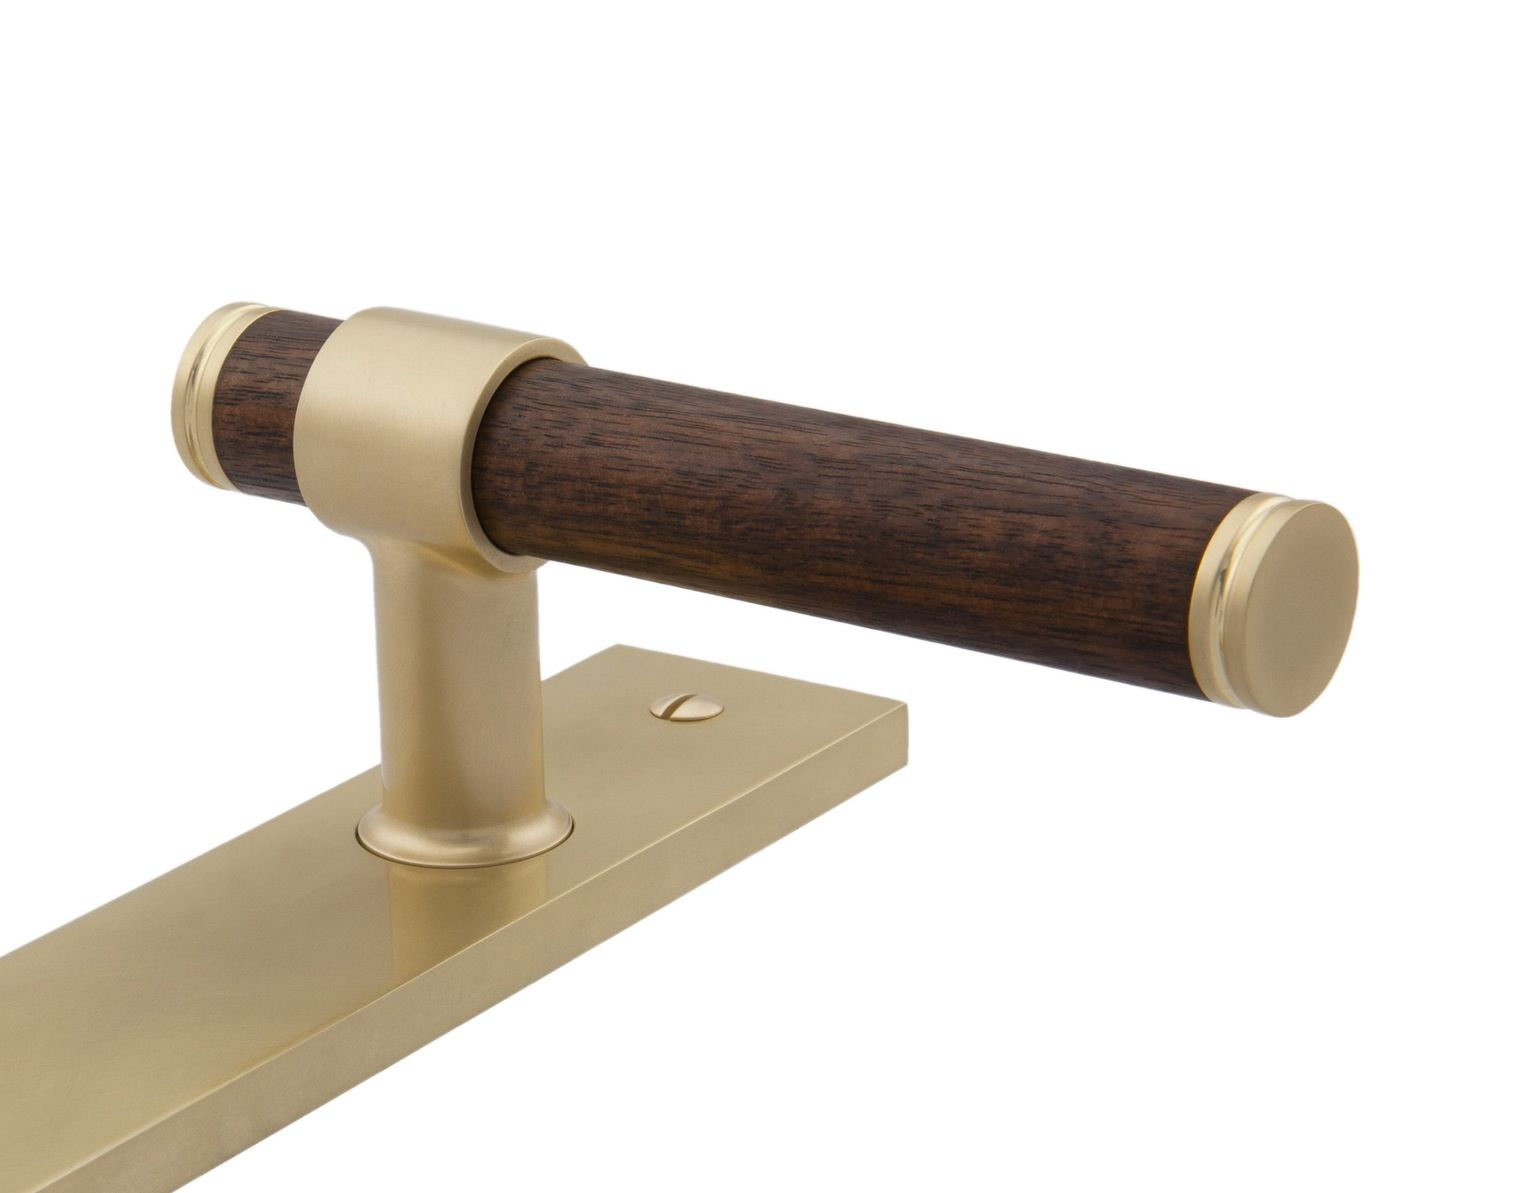 No 6527 L Modern Wood Lever Handle Contemporary, MidCentury Modern ...